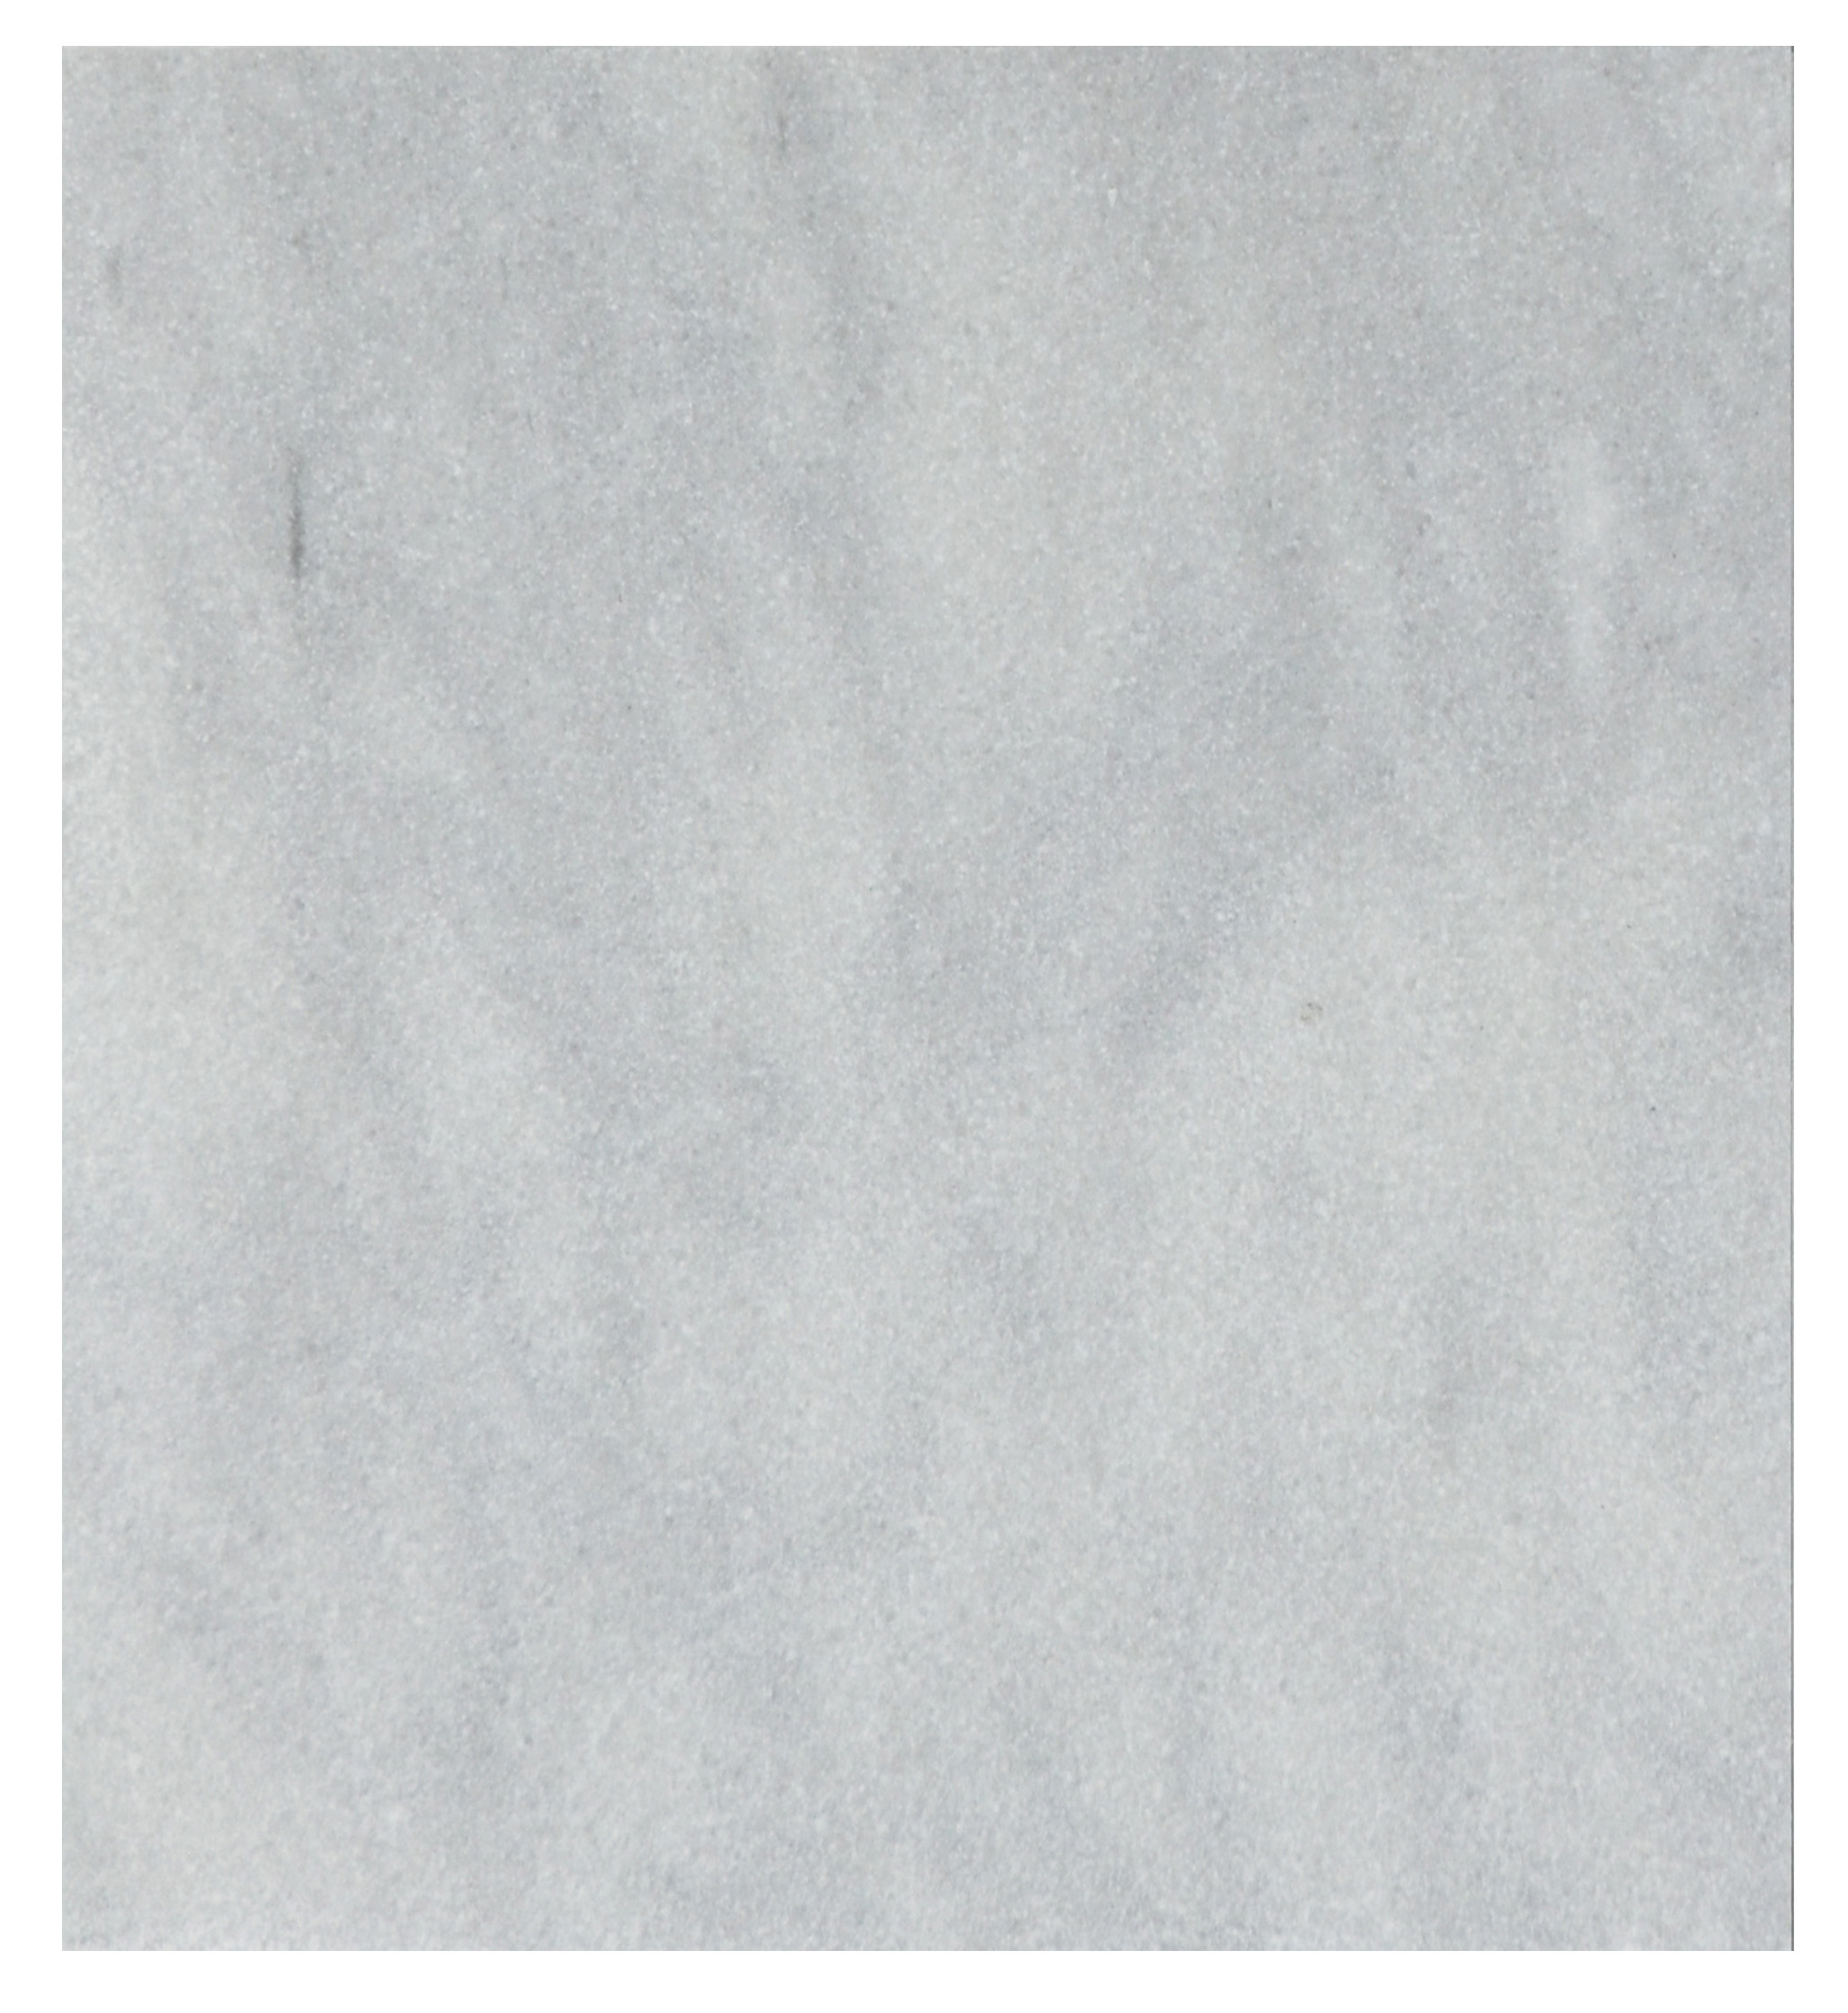 white fume sandblasted marble tiles 18x18-marble sale-Atlantic Stone Source